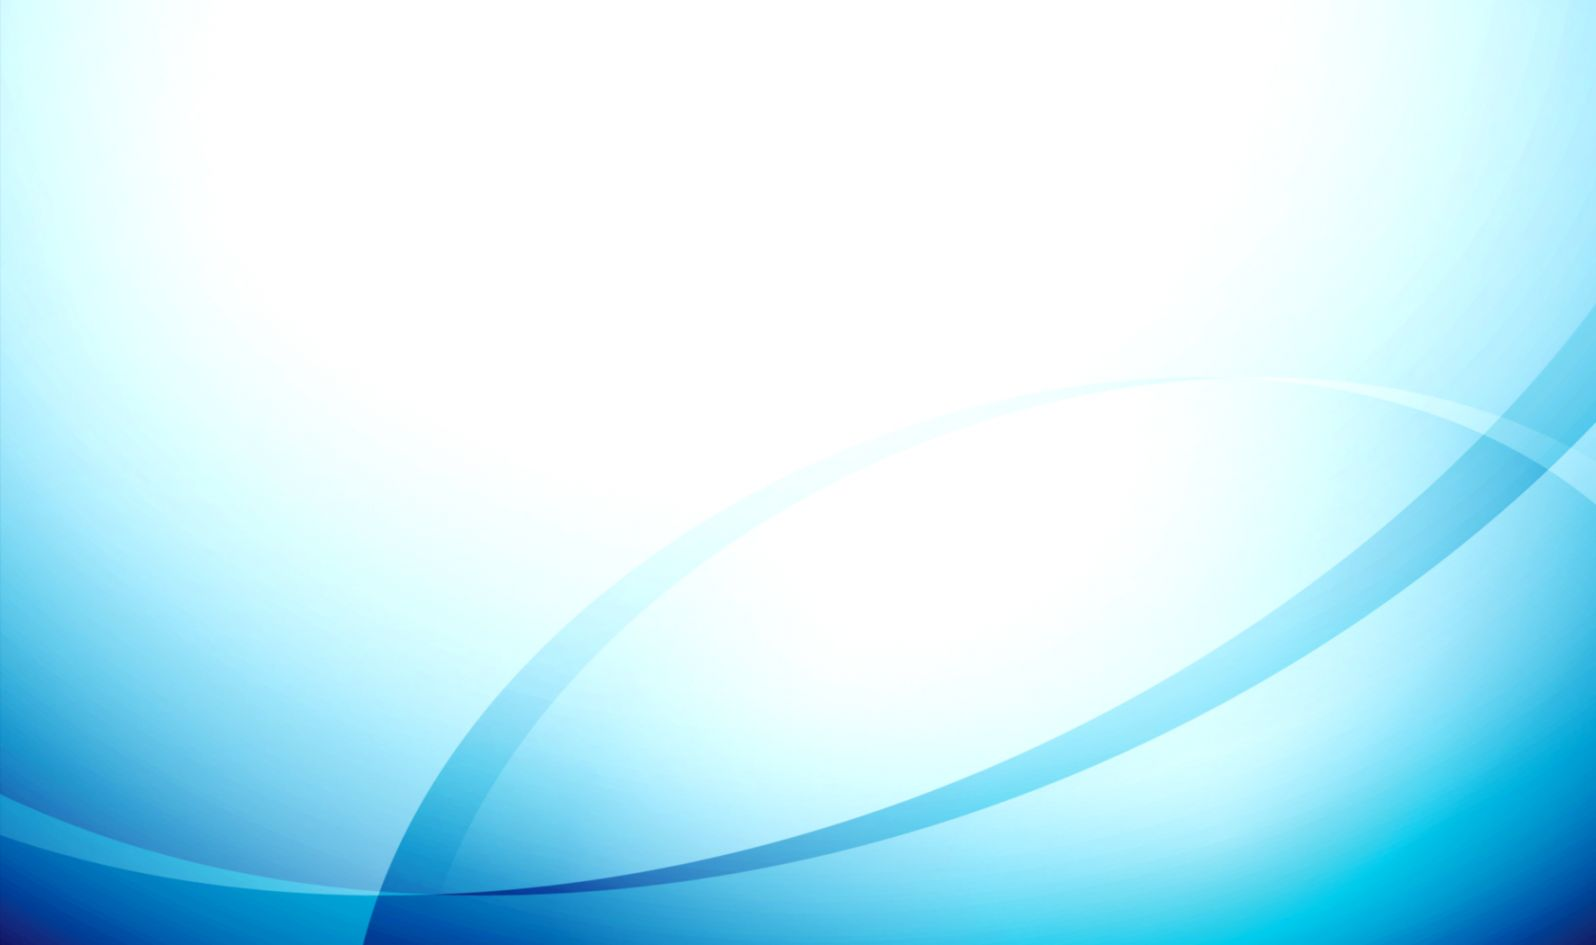 Abstract Waves Blue Background Hd Wallpapers Sinaga